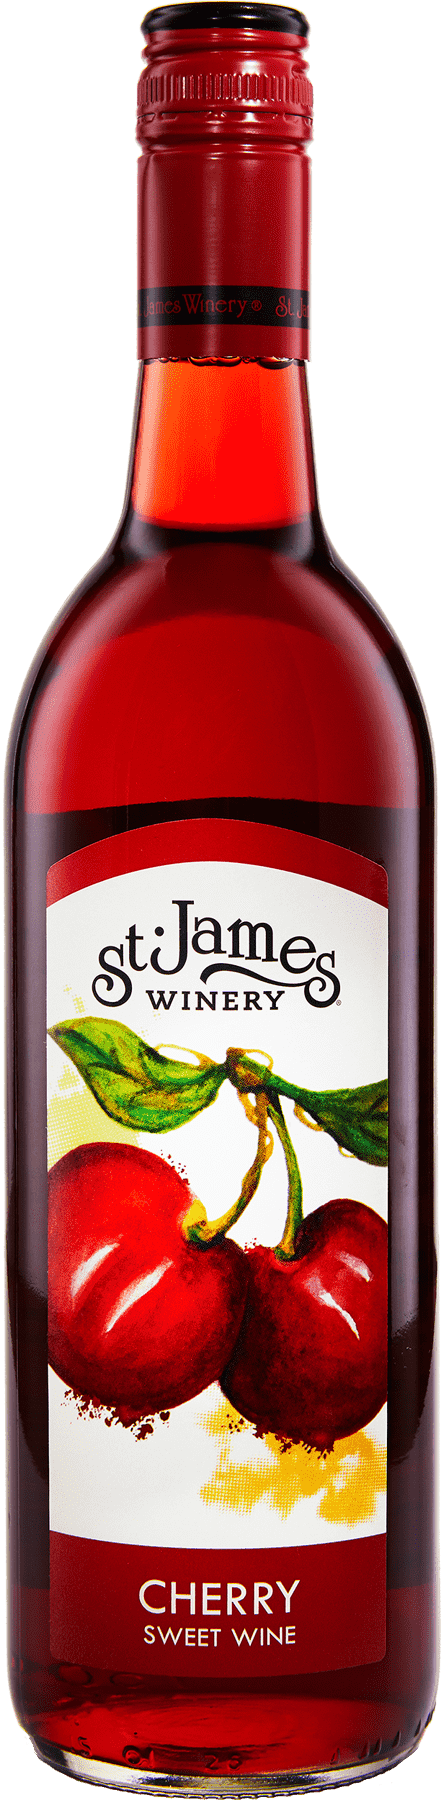 Cherry Wine Fruit Wines St James Winery